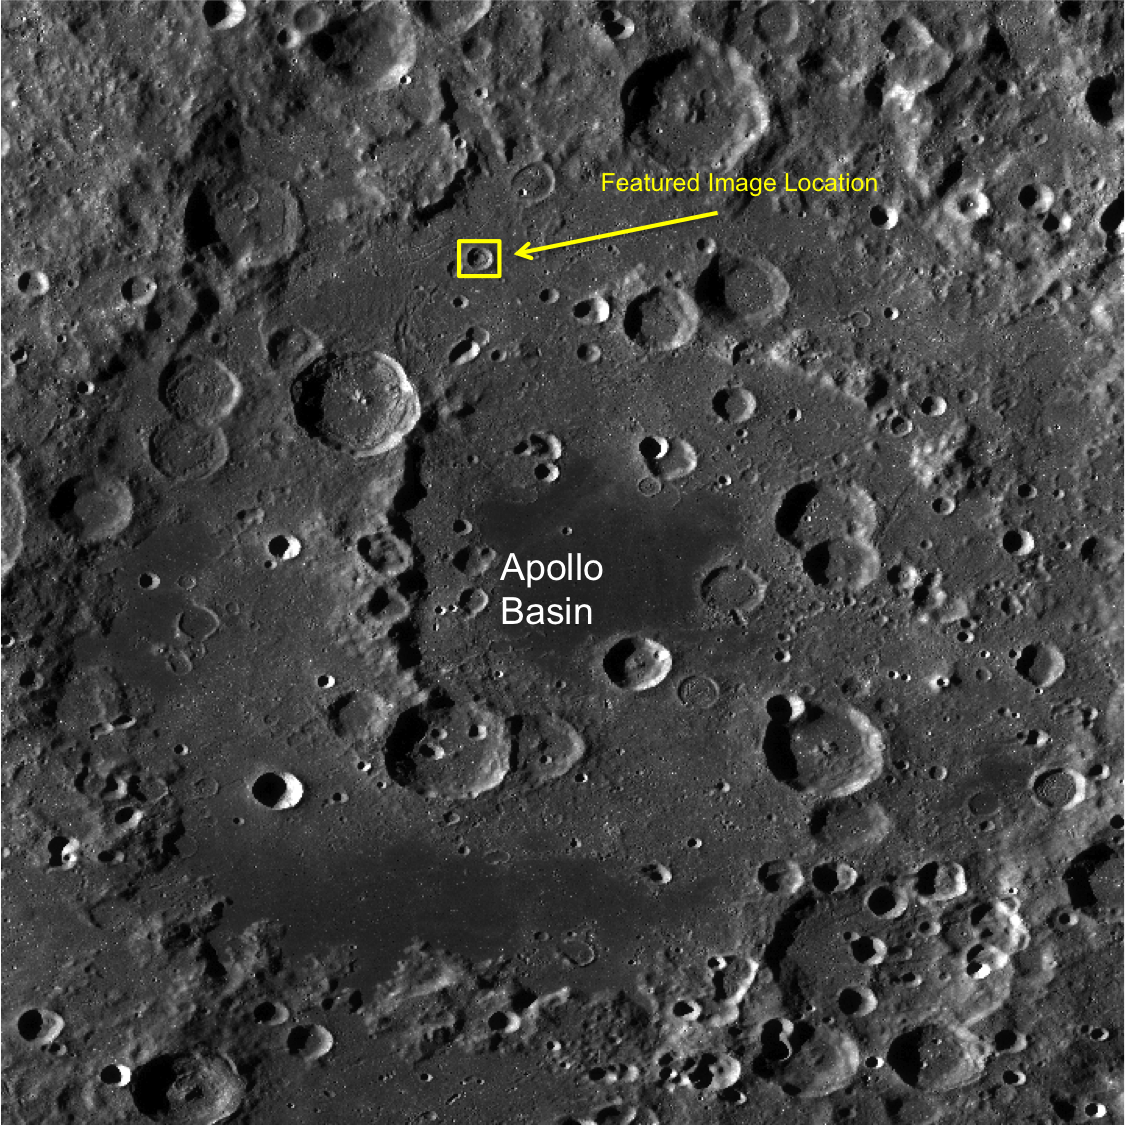 Apollo basin concentric crater context